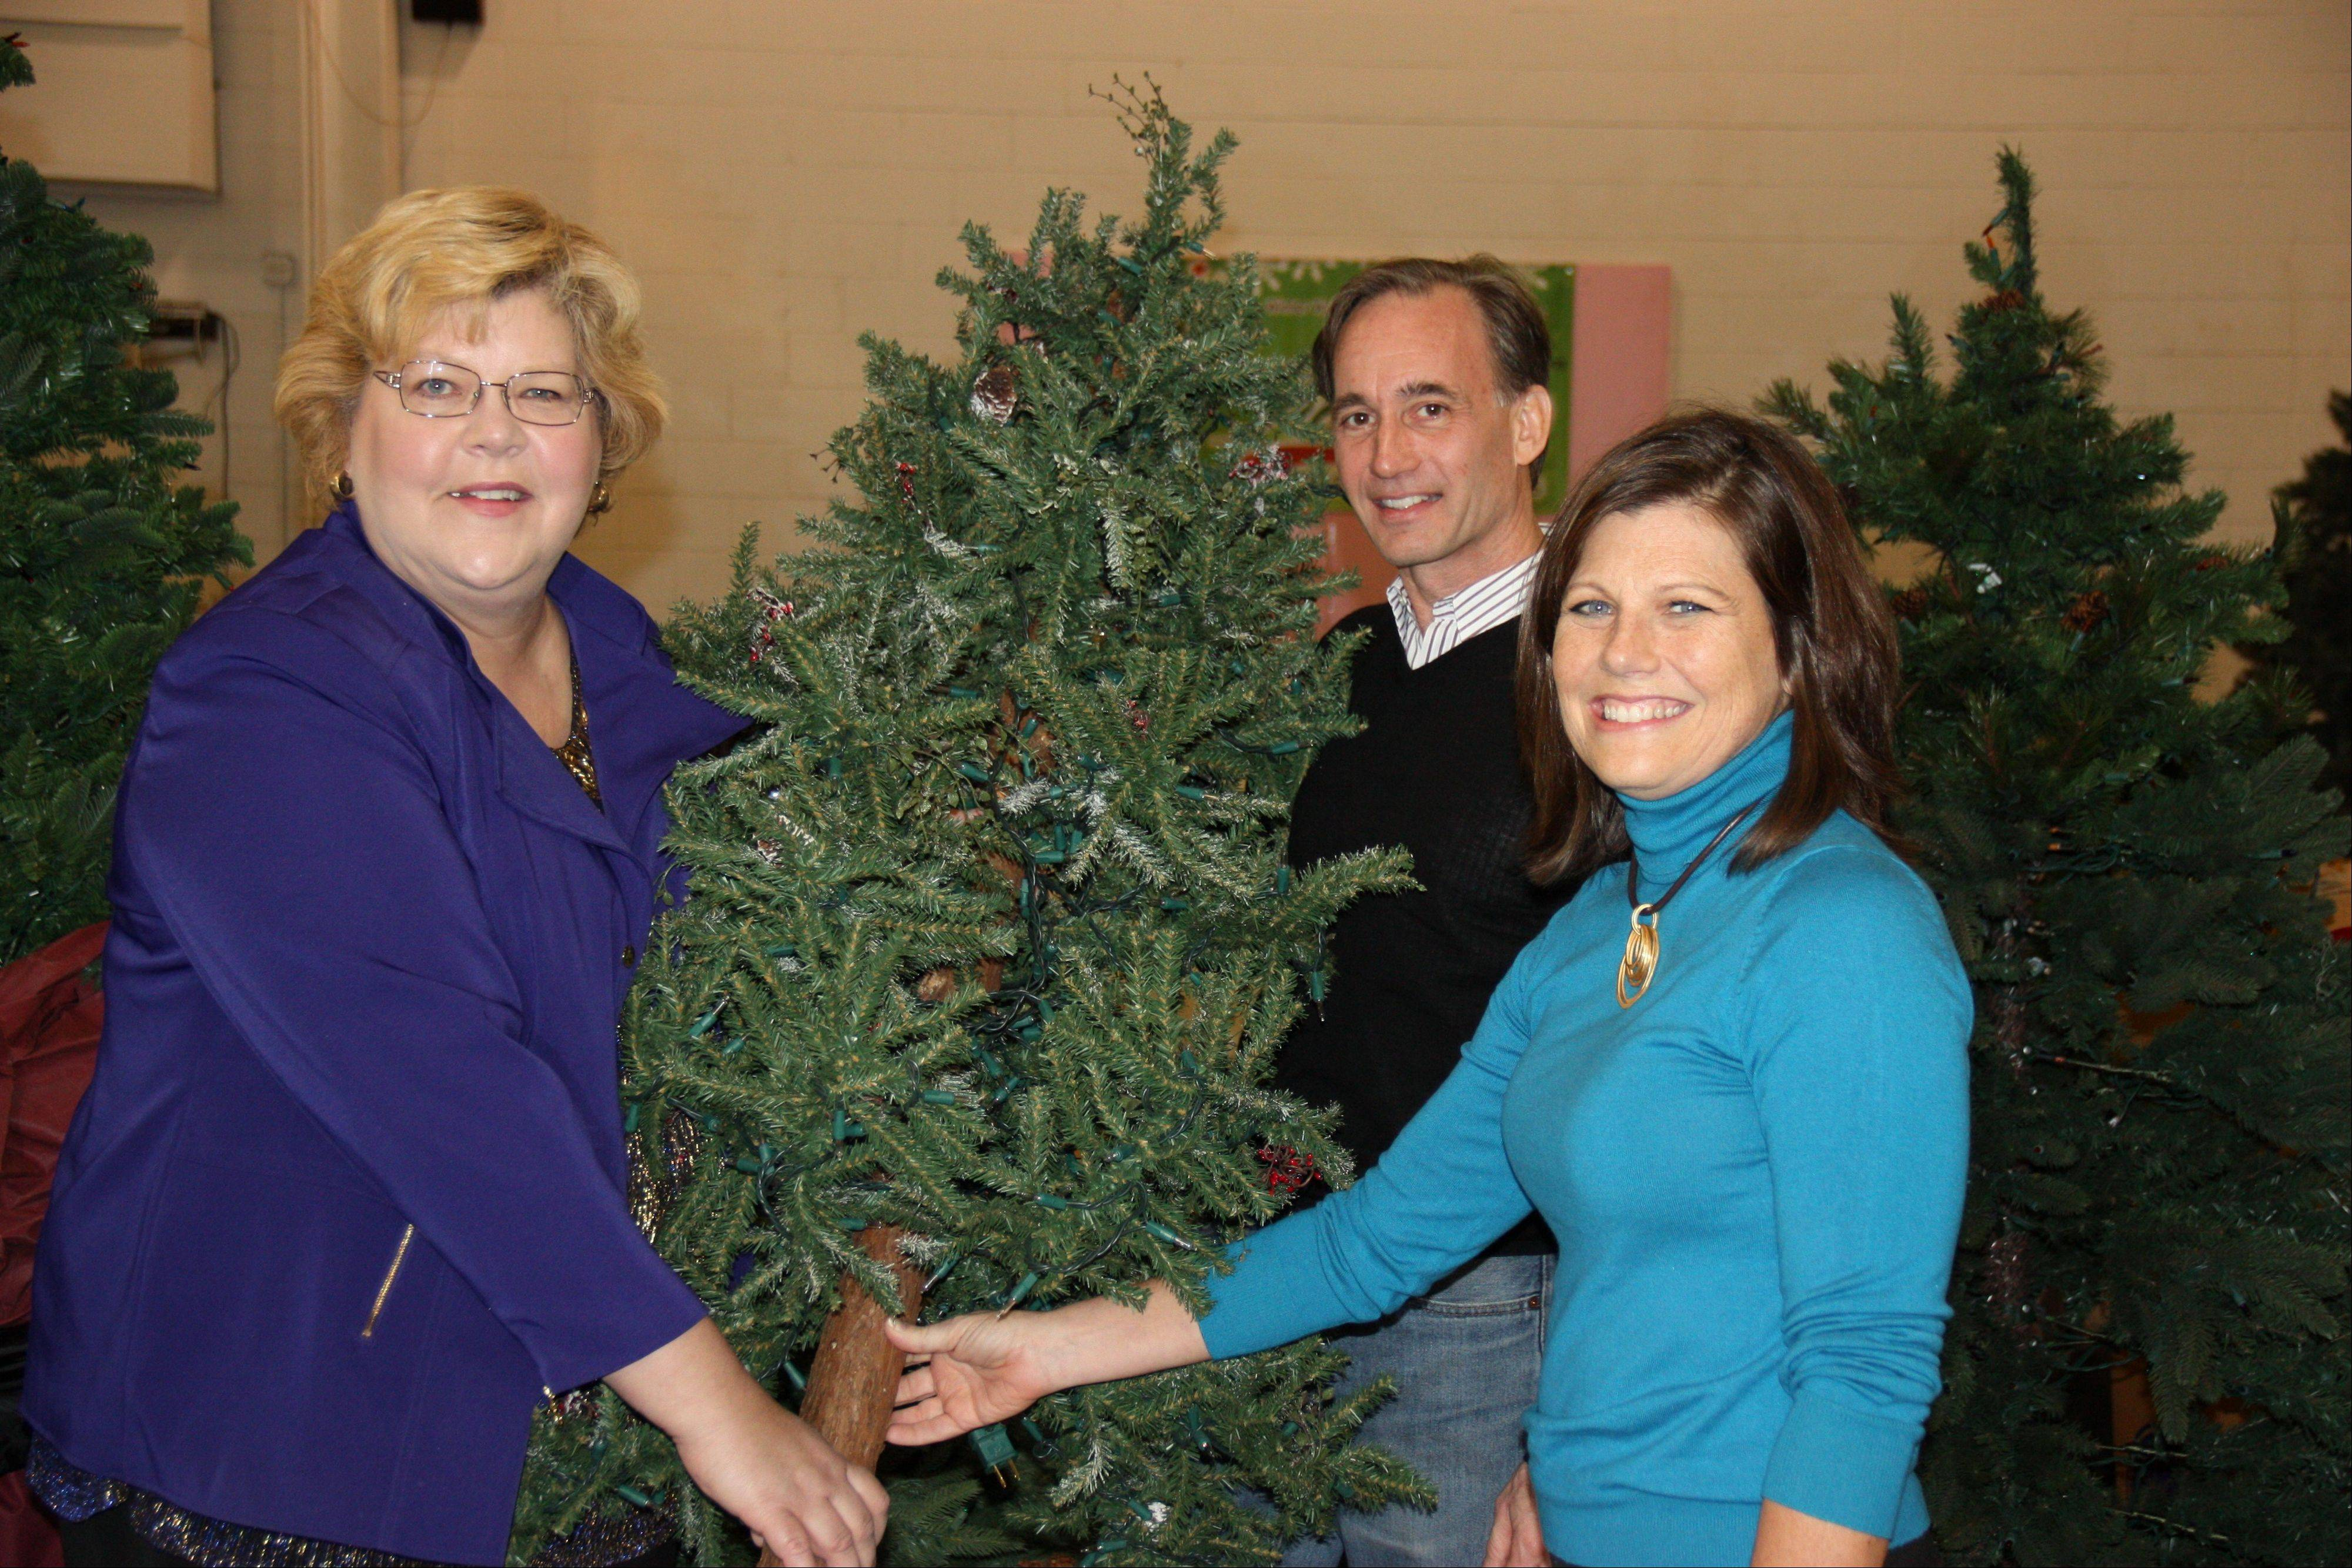 From left, Pat Boelter, chief marketing officer of Goodwill Industries of Metropolitan Chicago with Joe and Laurie Kane, owners of Treetime Christmas Creations.